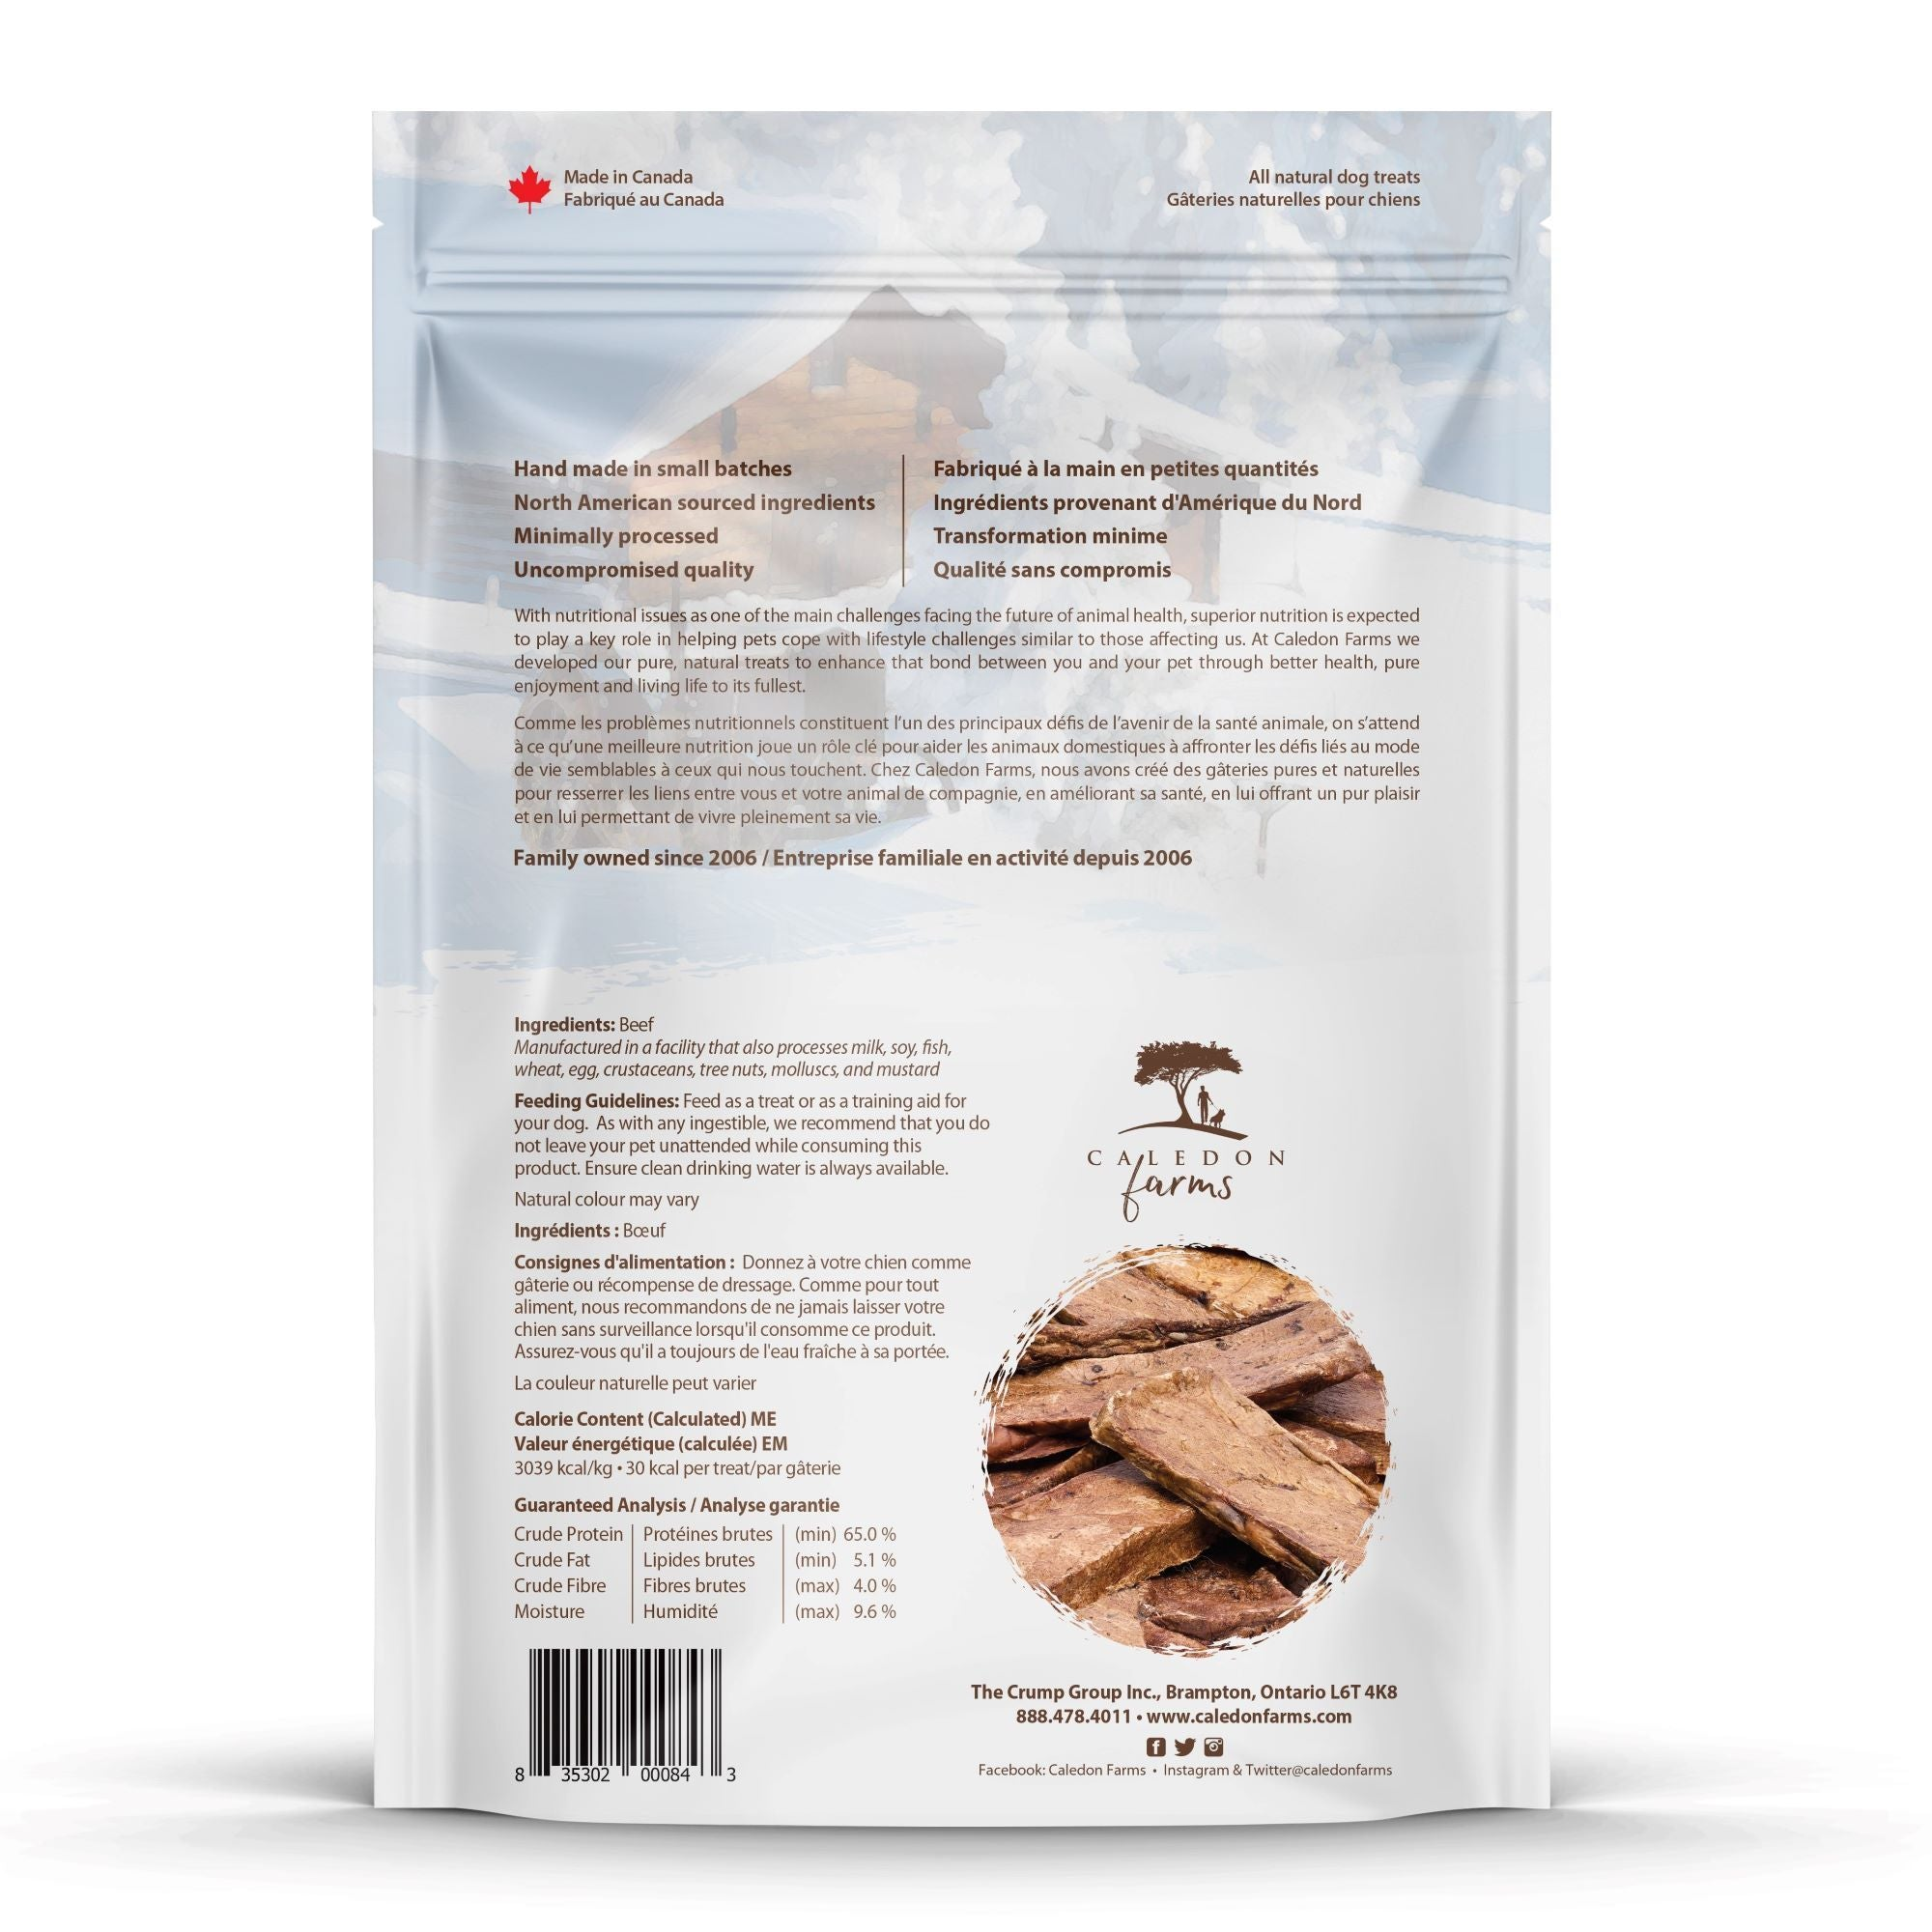 Beef Tendersticks Dog Treats Bag Back